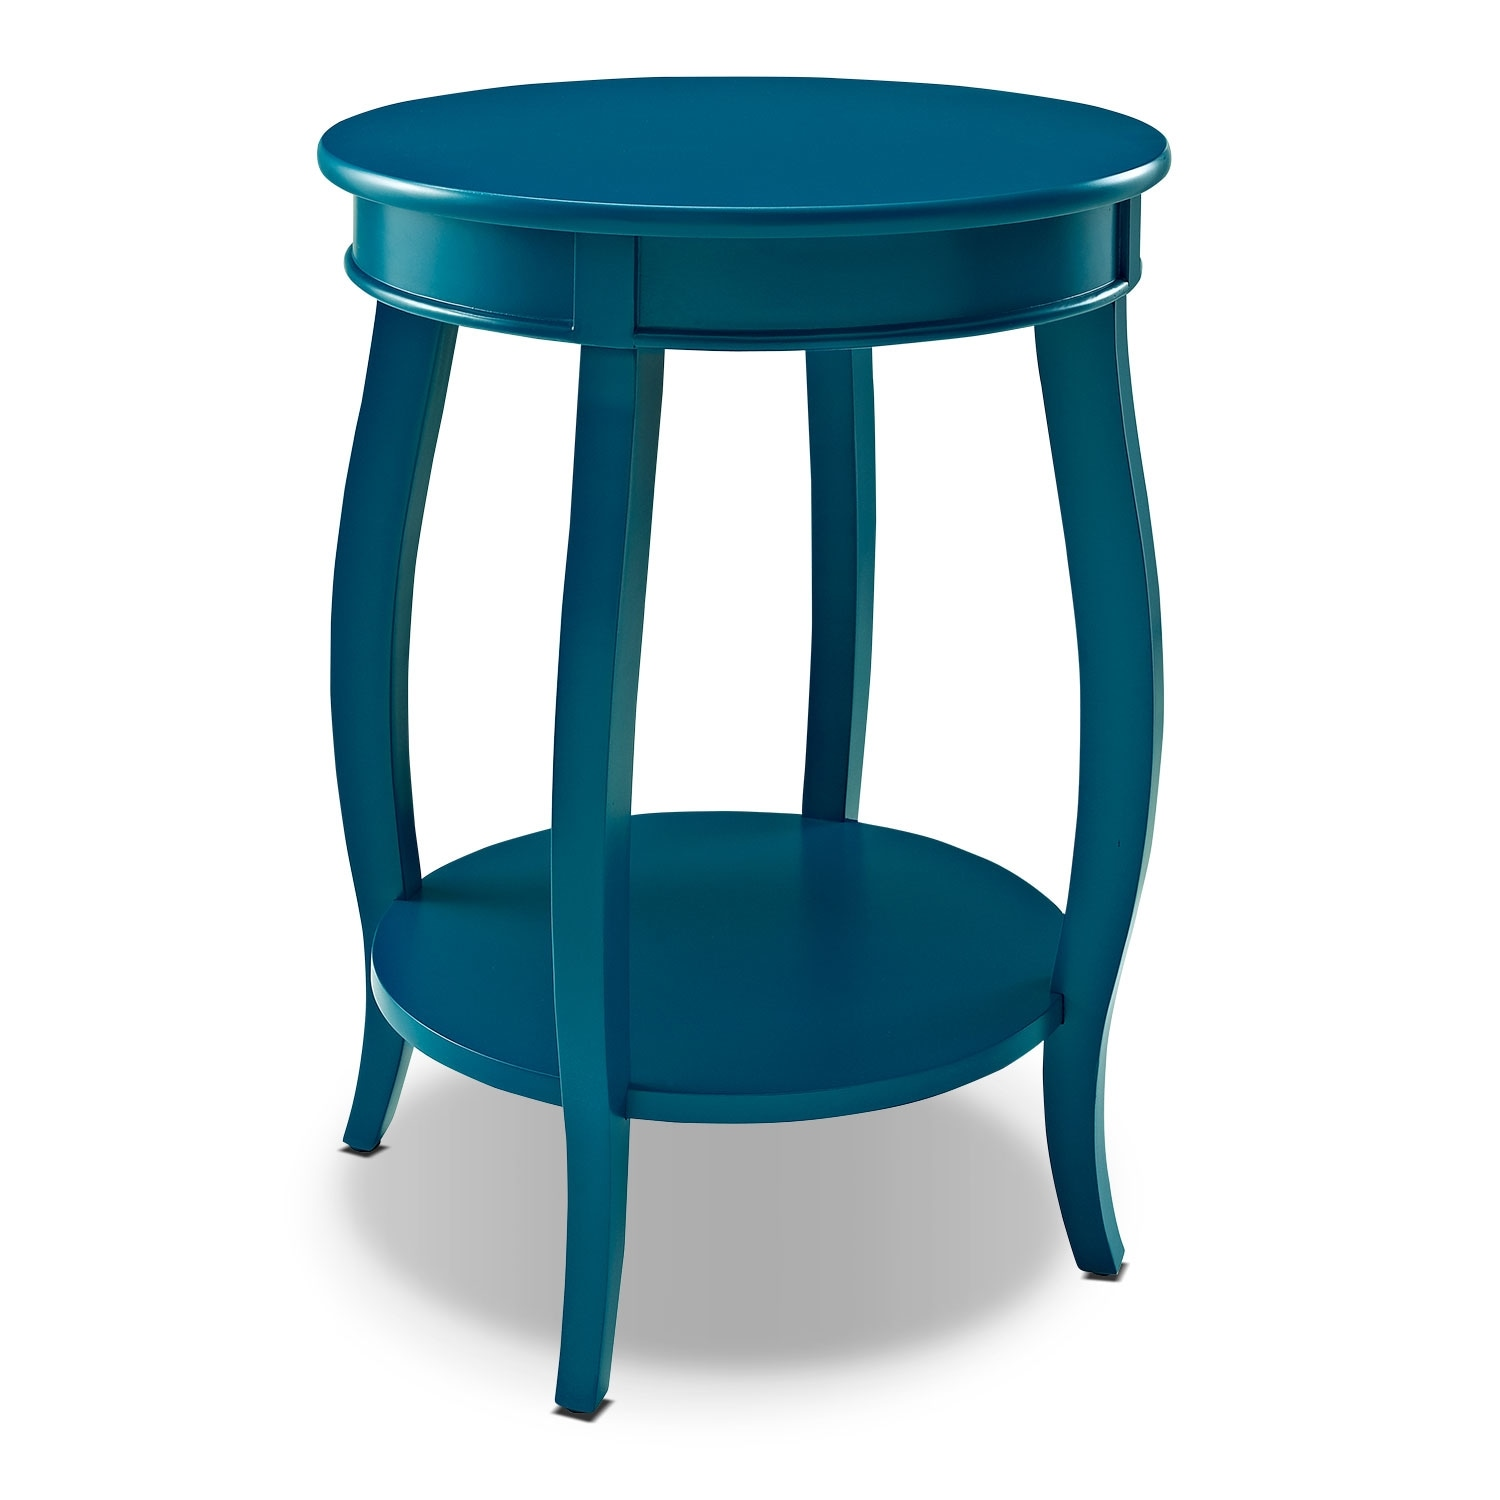 small iron table probably perfect cool teal blue end ideas sydney accent value city furniture and mattresses occasional big lots rugs inexpensive patio chairs white floor lamp